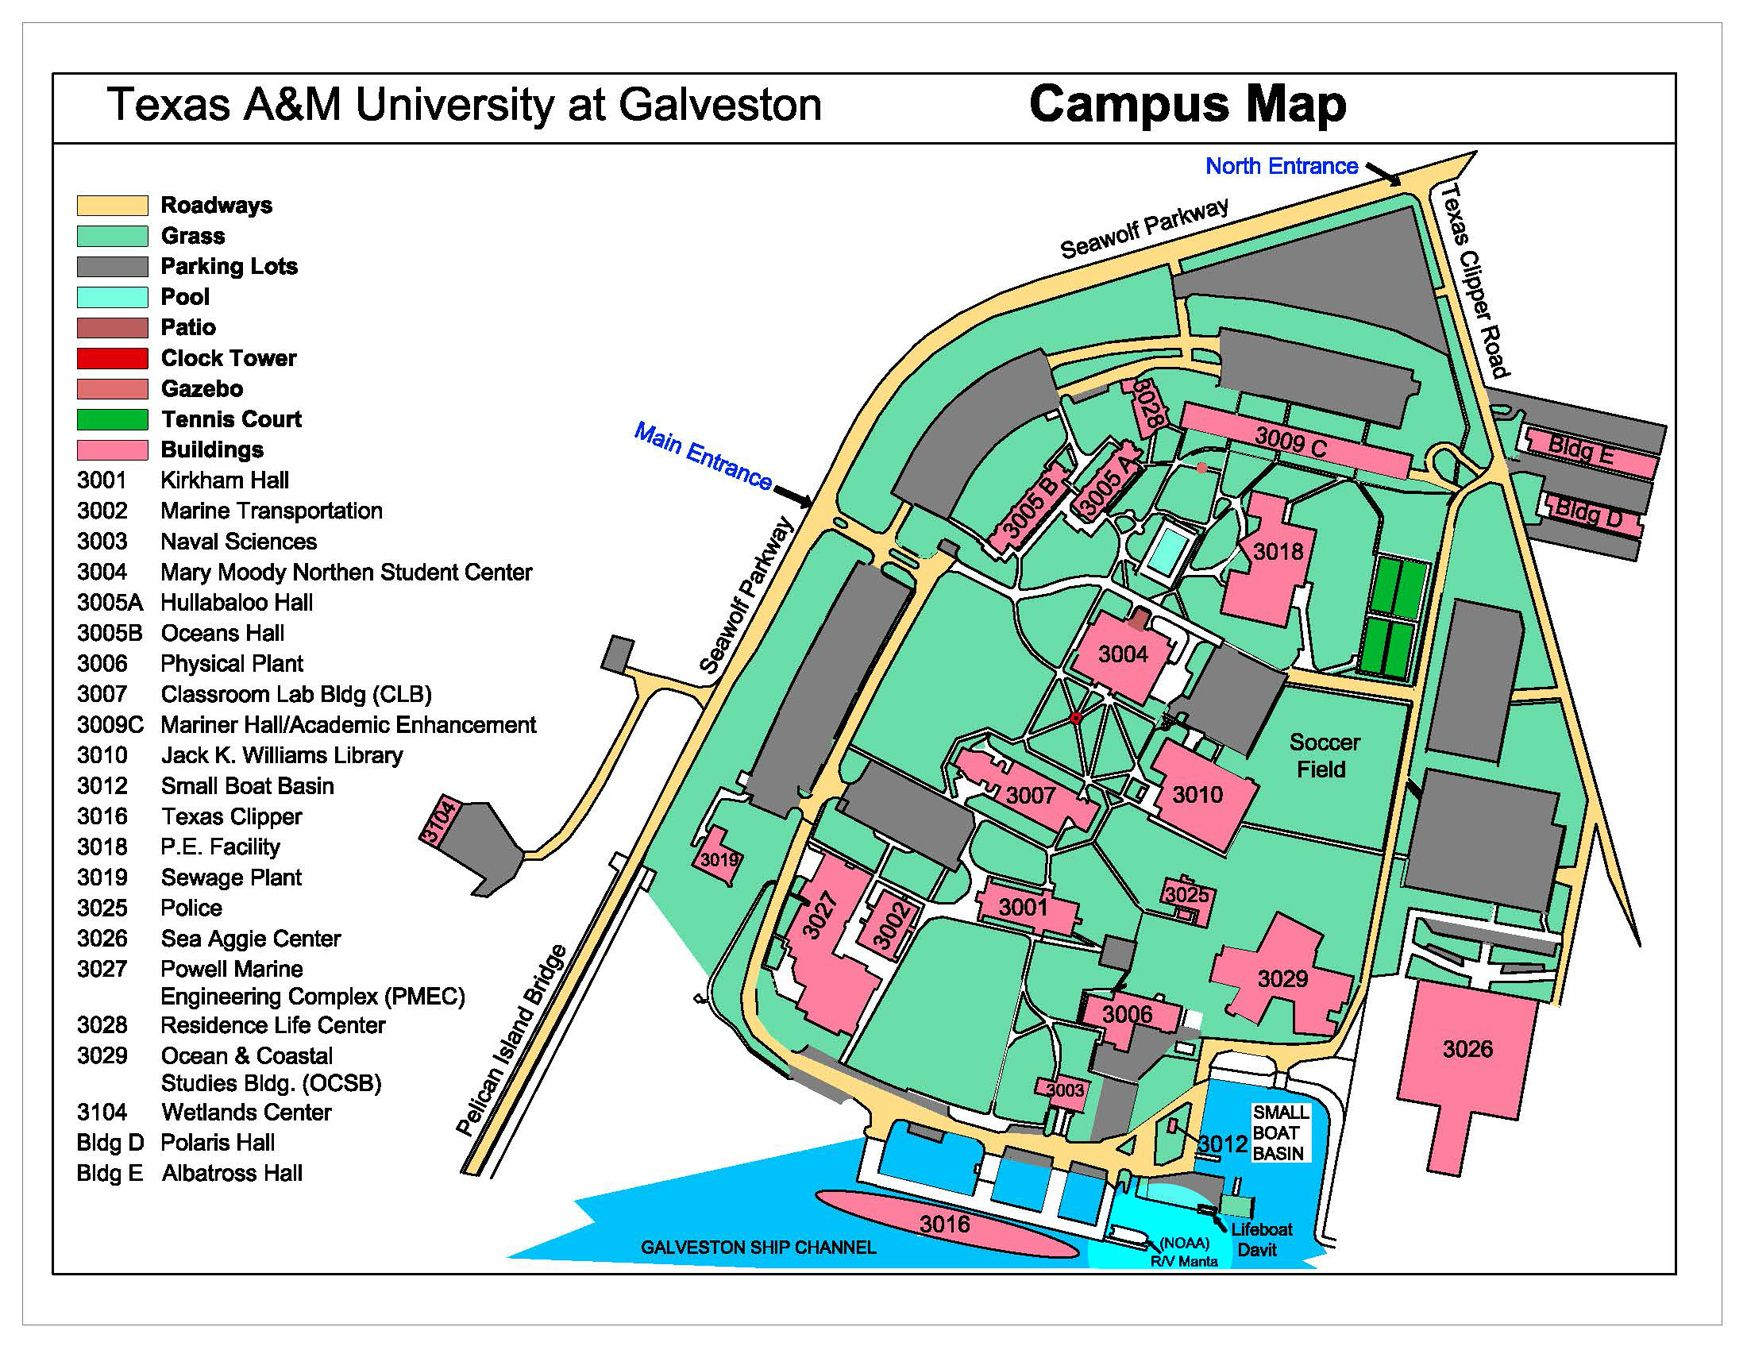 texas a&m galveston campus - Google Search | Galveston ... on gsu campus map, skagit college campus map, arizona western college campus map, cisco college campus map, art institute of dallas campus map, unt health science center campus map, knoxville college campus map, baylor college of medicine campus map, manor college campus map, vernon college campus map, galveston haunted face, college of southern idaho campus map, south plains college map, georgia perimeter college campus map, alameda college campus map, oneonta college campus map, eastern arizona college campus map, lake michigan college campus map, clarendon college campus map, longview college campus map,